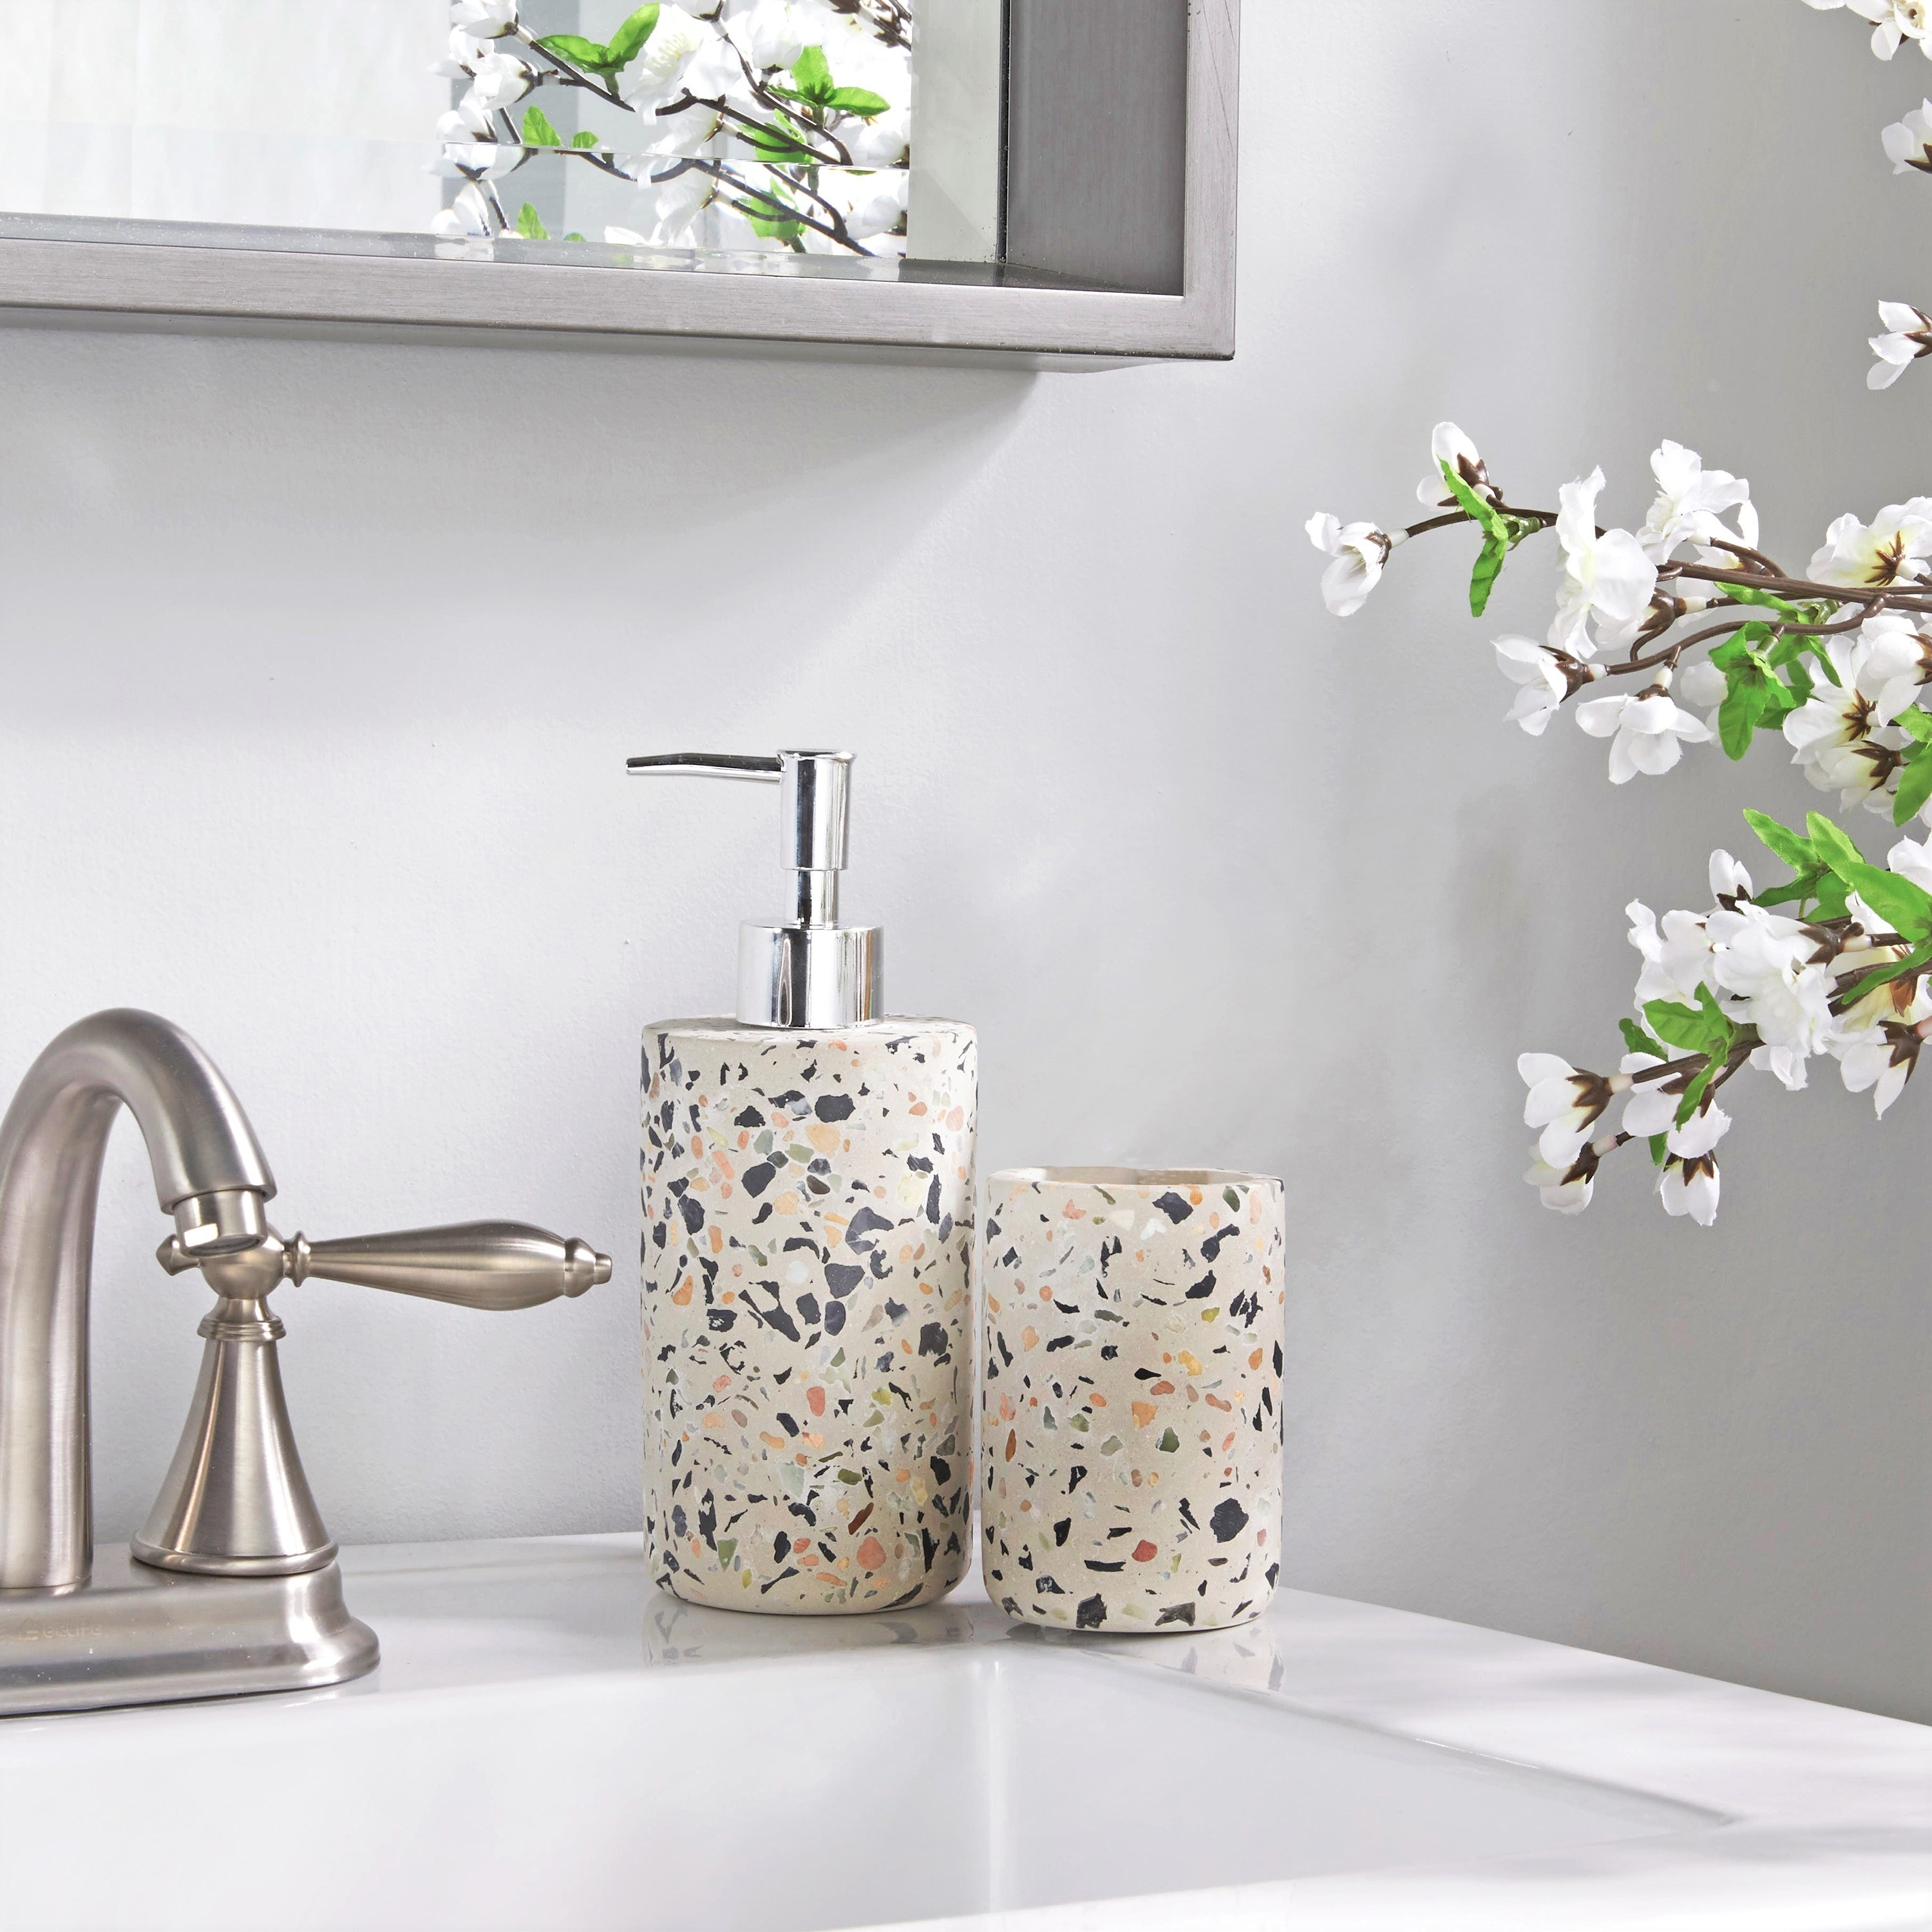 A white hand soap pump and a toothbrush cup in a terrazzo pattern